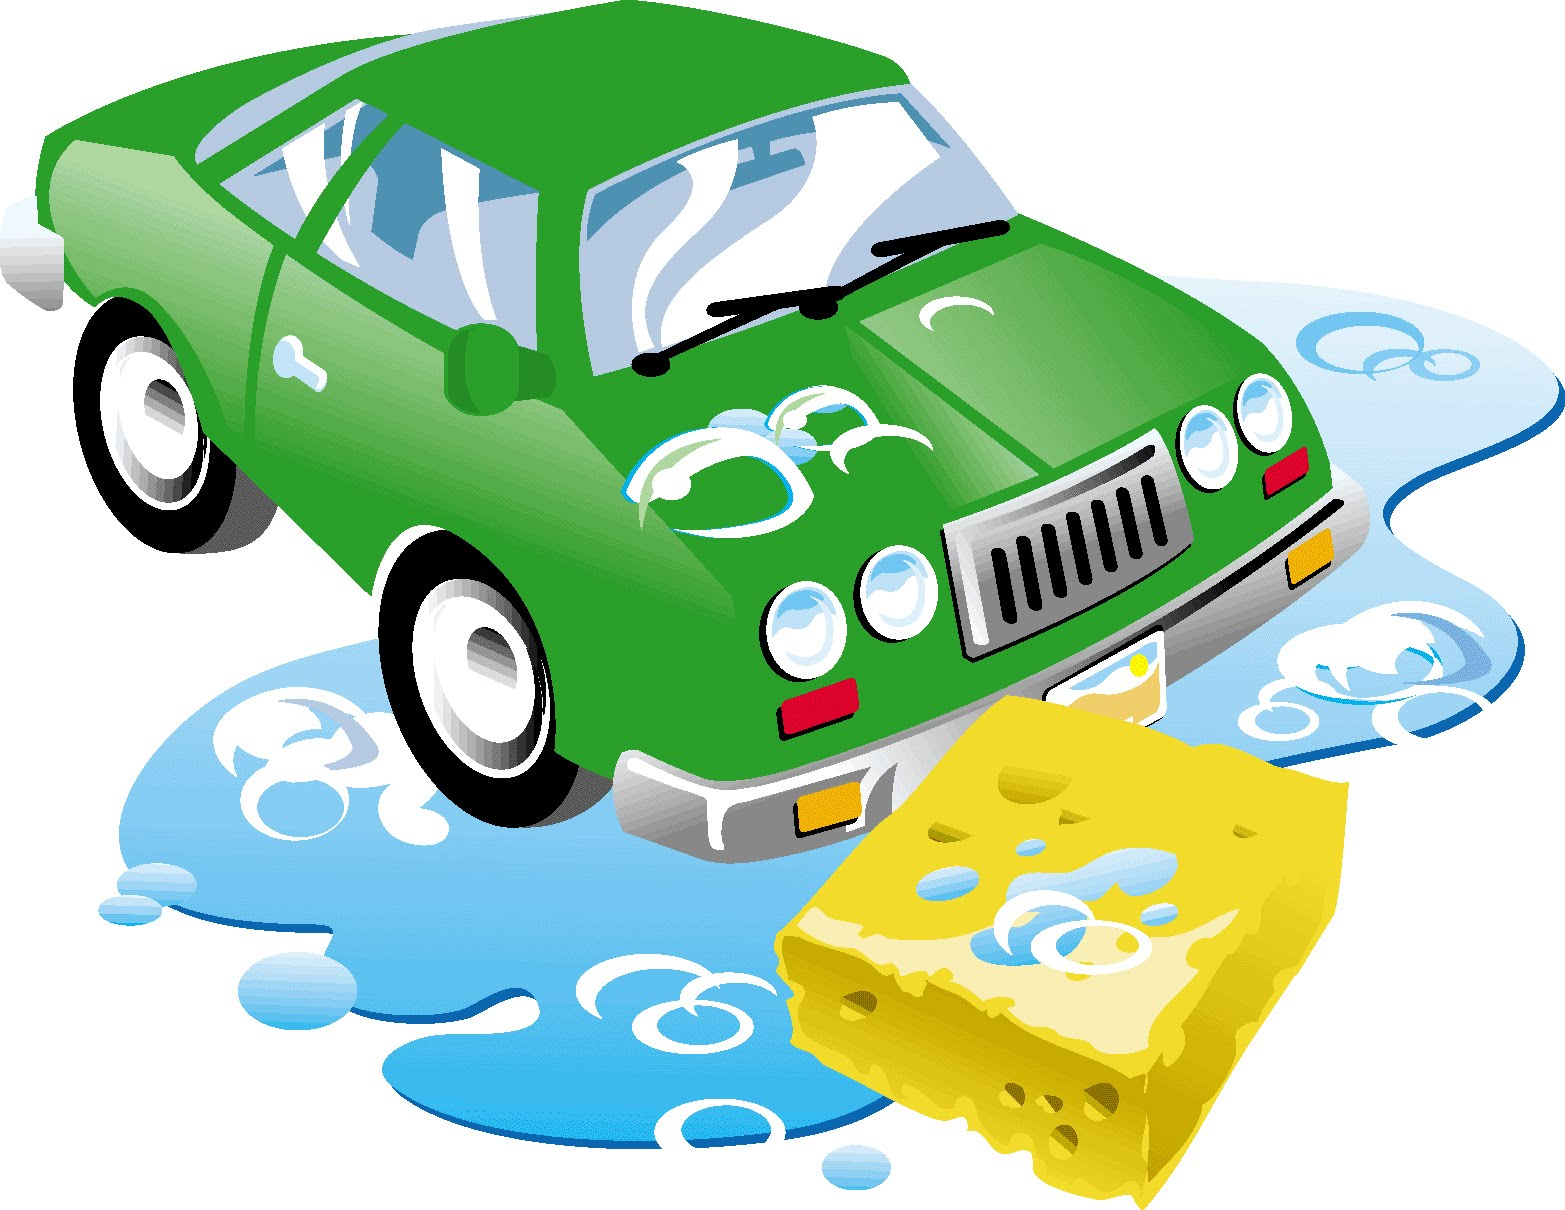 Car wash car clipart png black and white download Wash car clipart - ClipartFest png black and white download